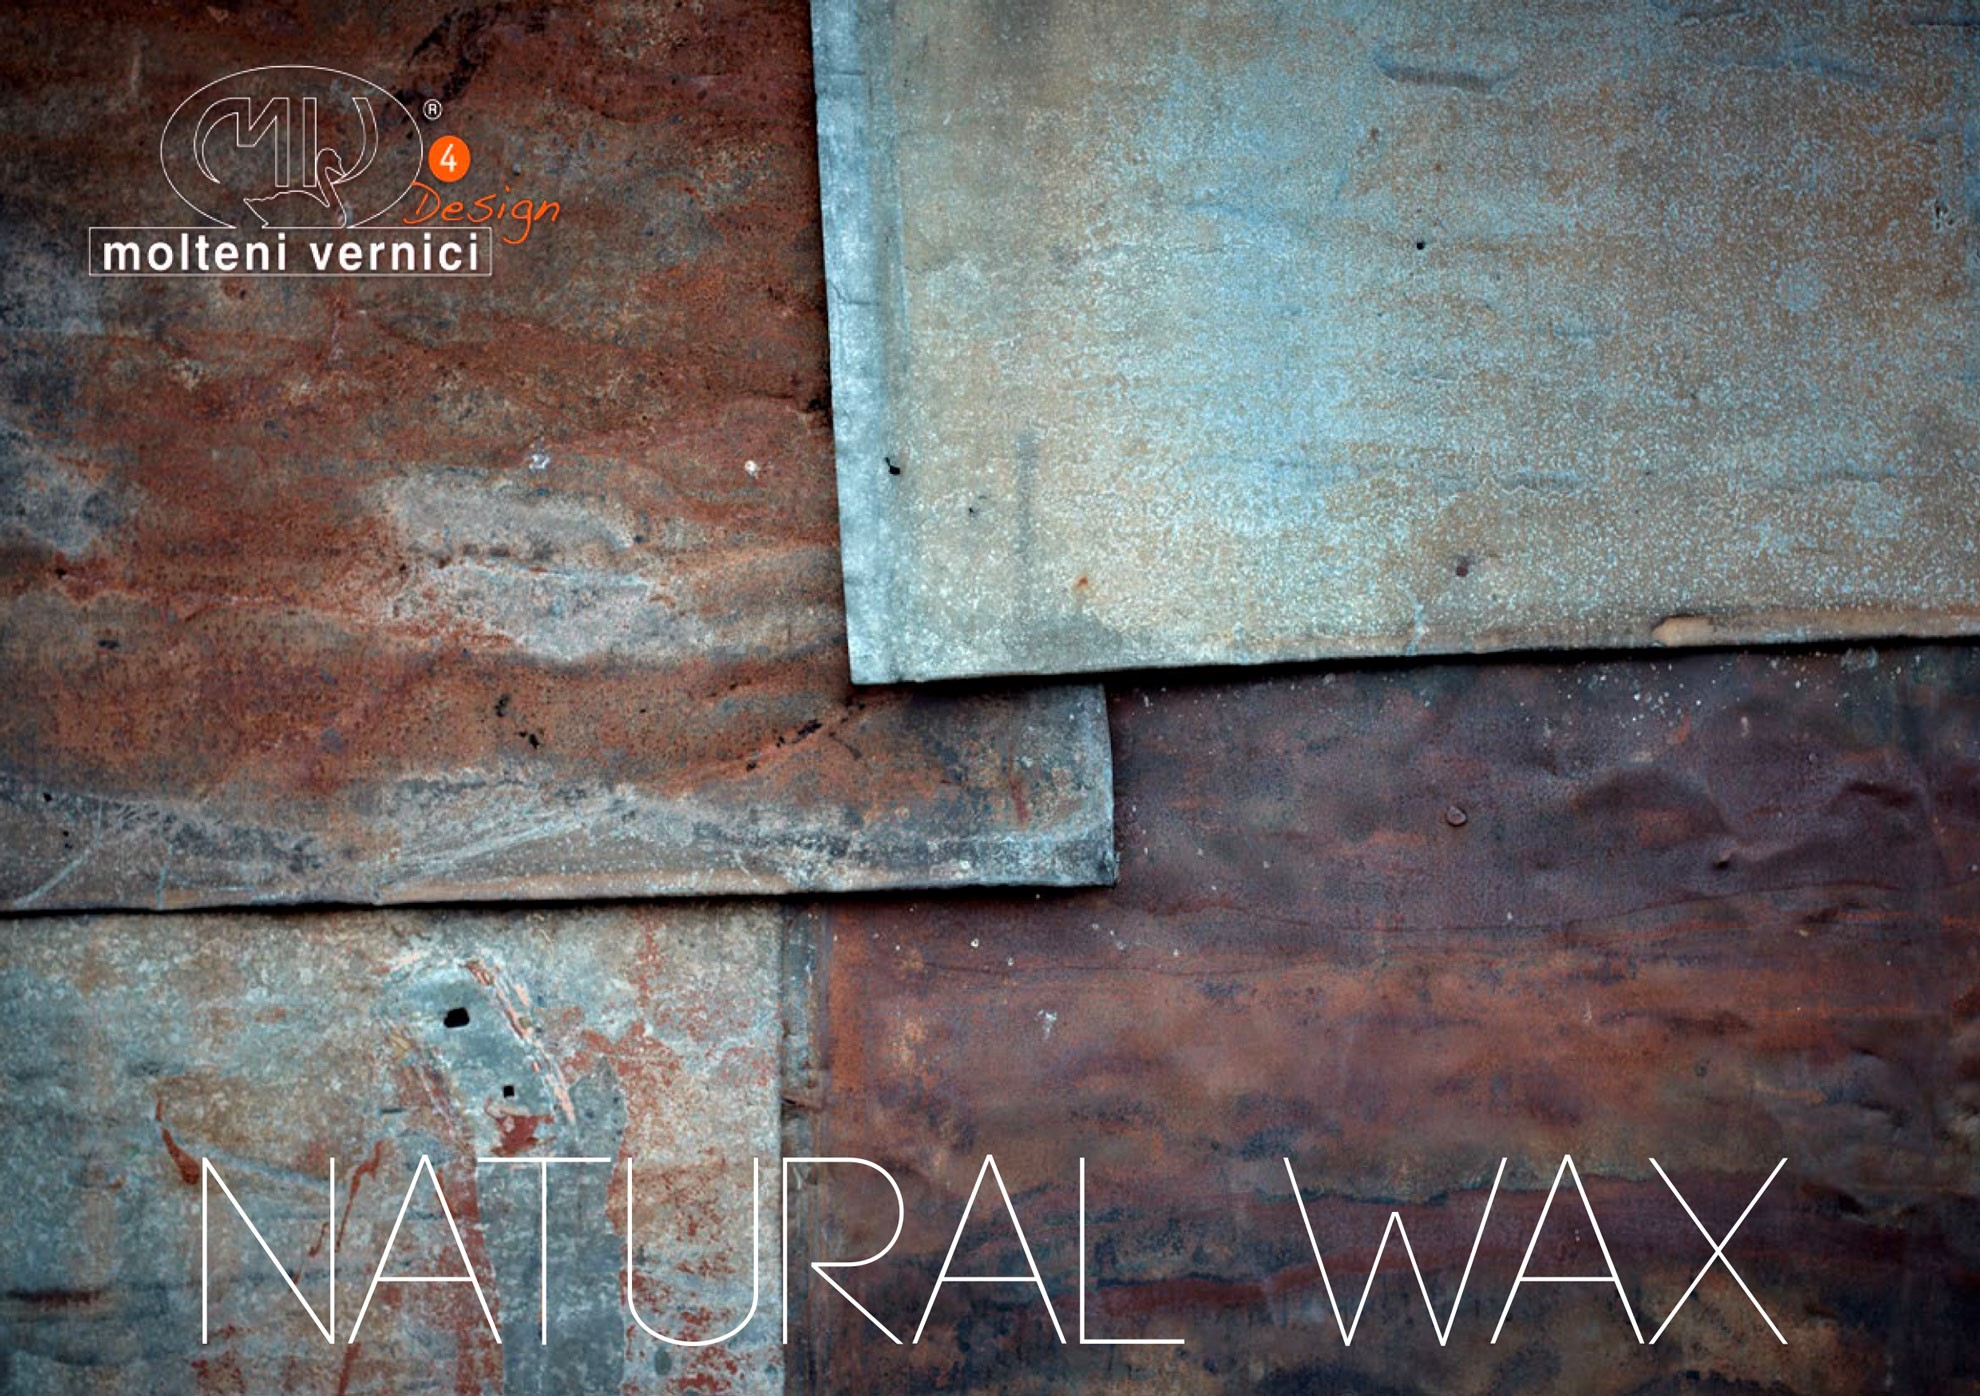 https://www.moltenivernici.com/cataloghi-it/catalogo-natural-wax-effetto-metallo-cerato-molteni-vernici